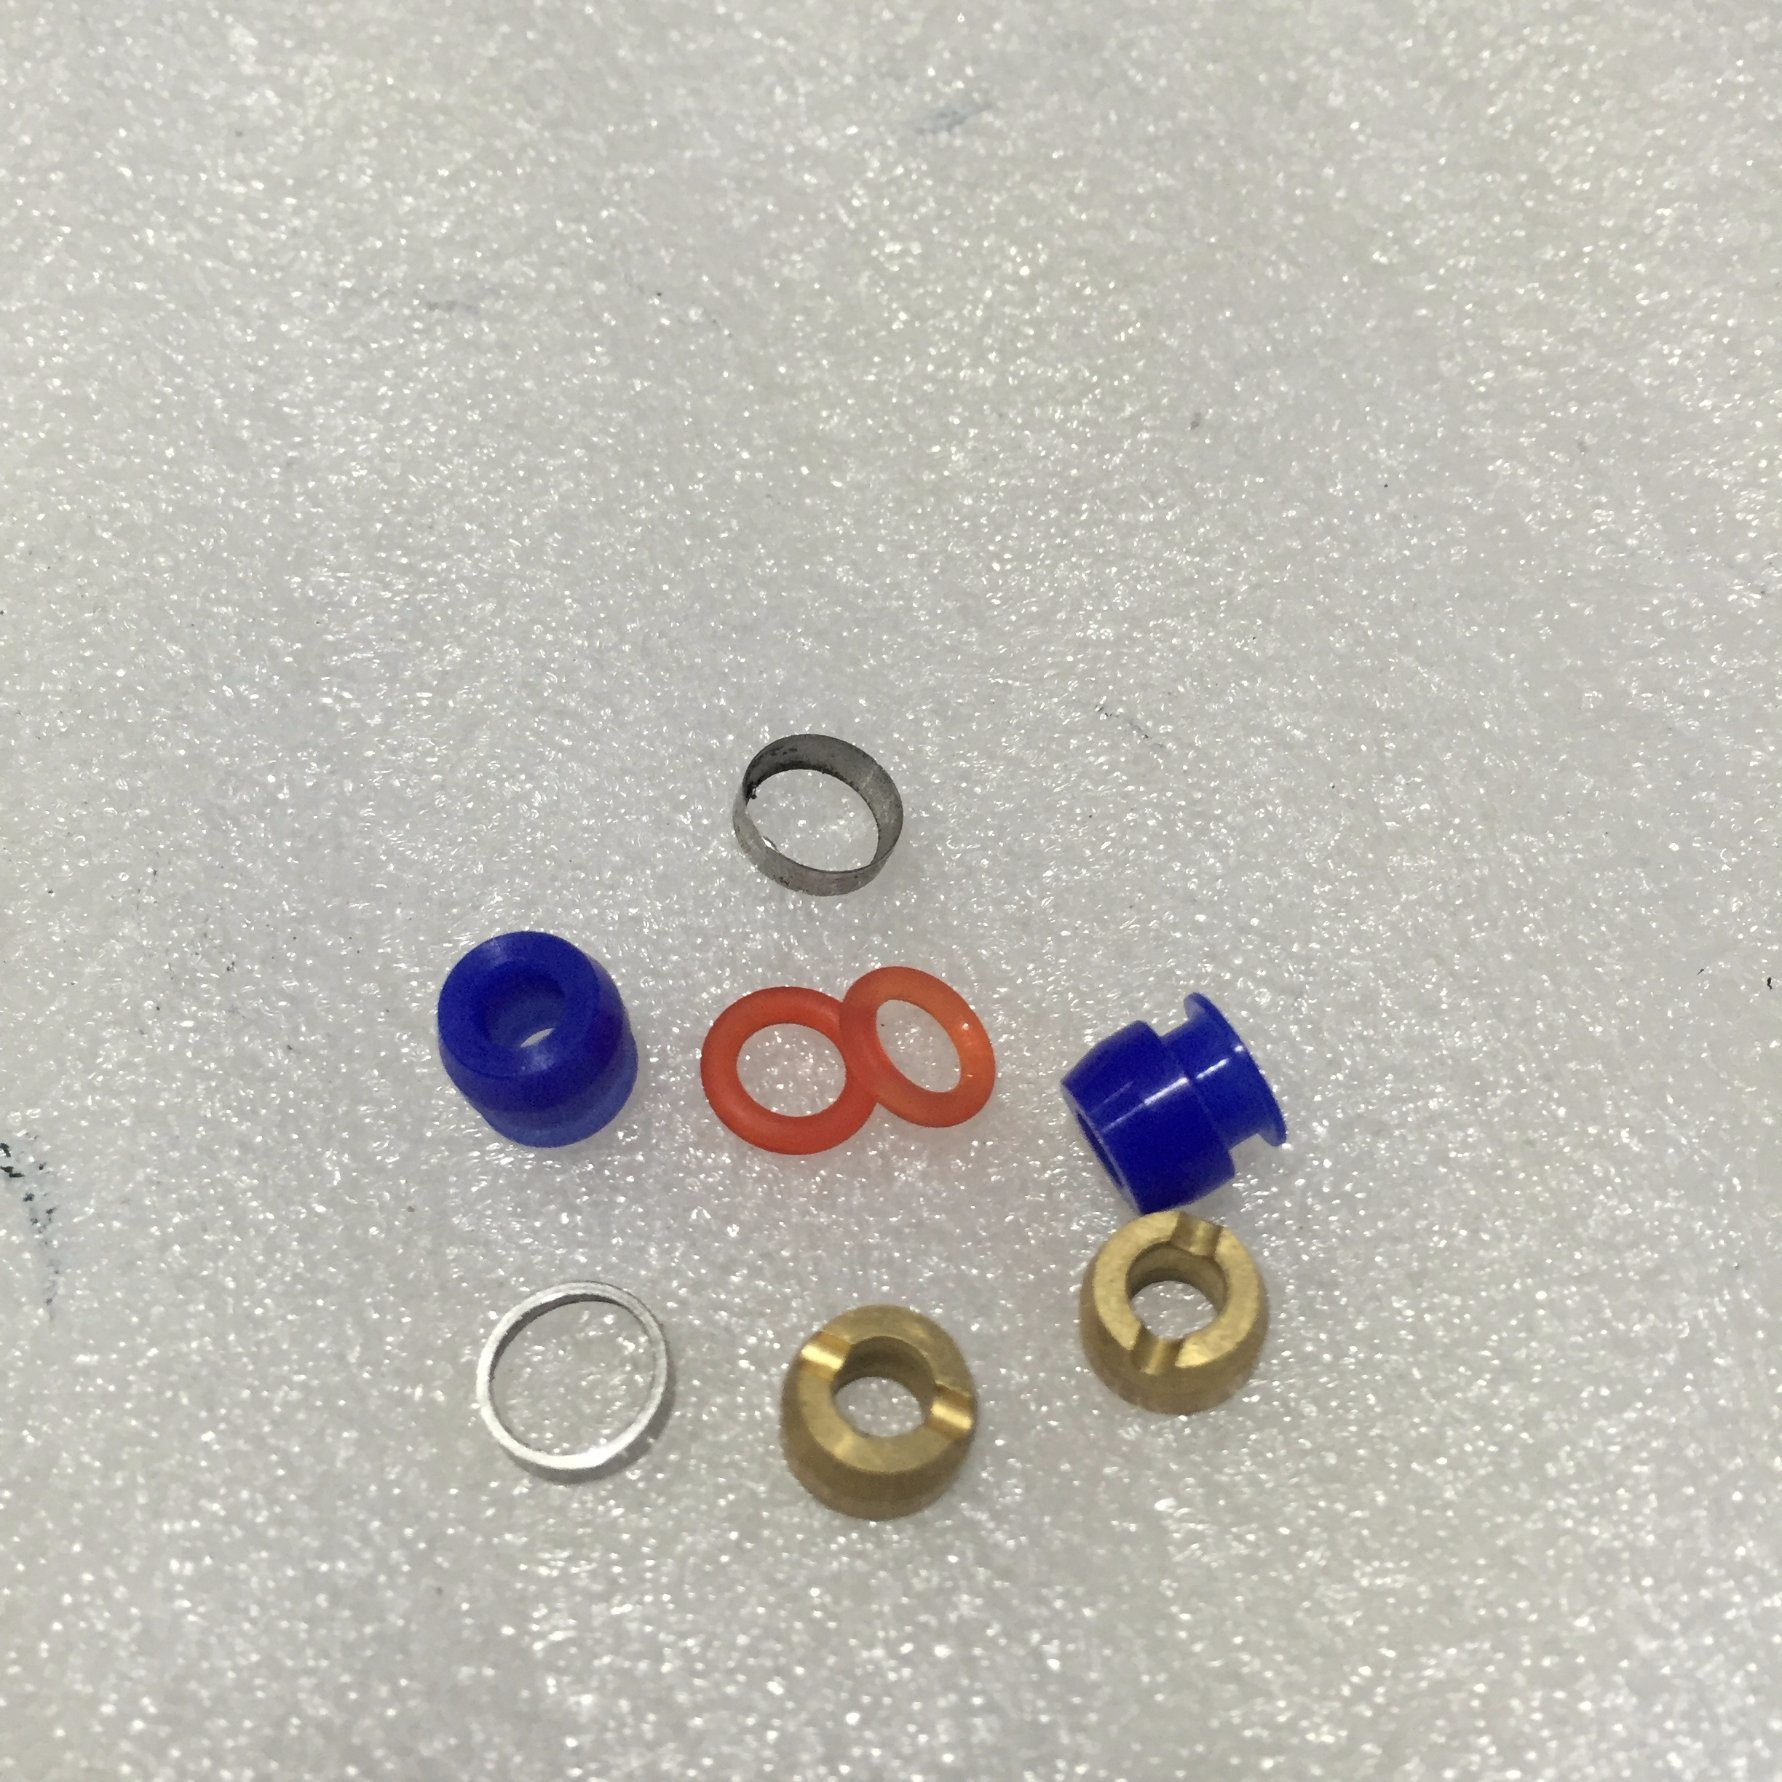 60k Rotary Valve Repair Kit for Waterjet Cutting pictures & photos